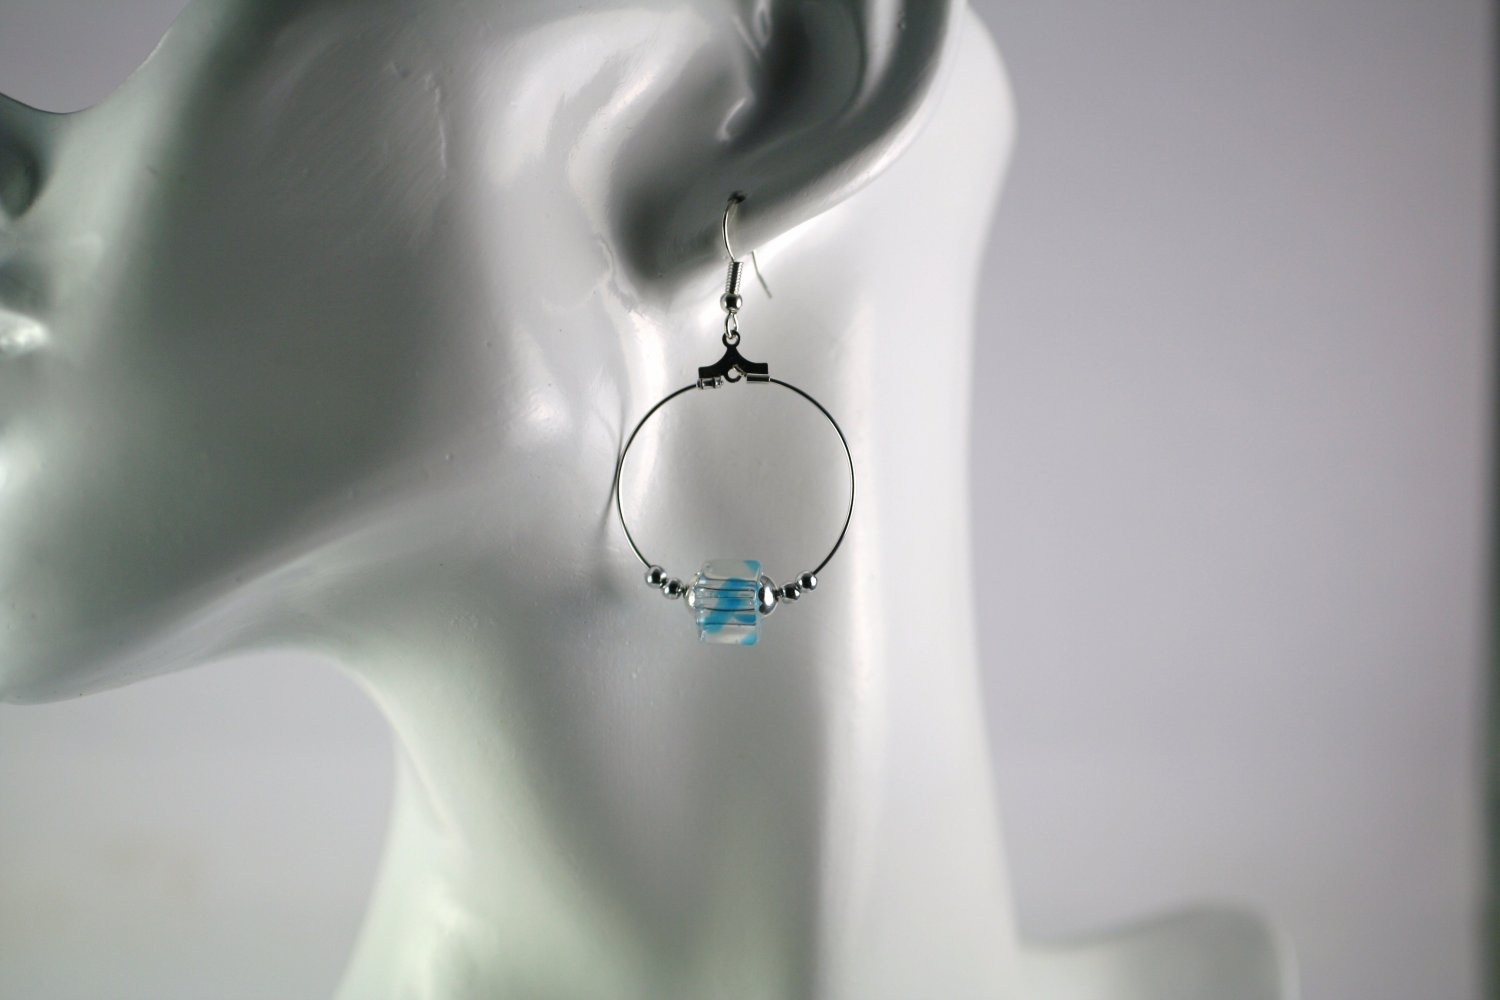 Silver Hoop Earrings with Blue Swirl Cube Beads 1 in. Diameter  Handcrafted Jewelry